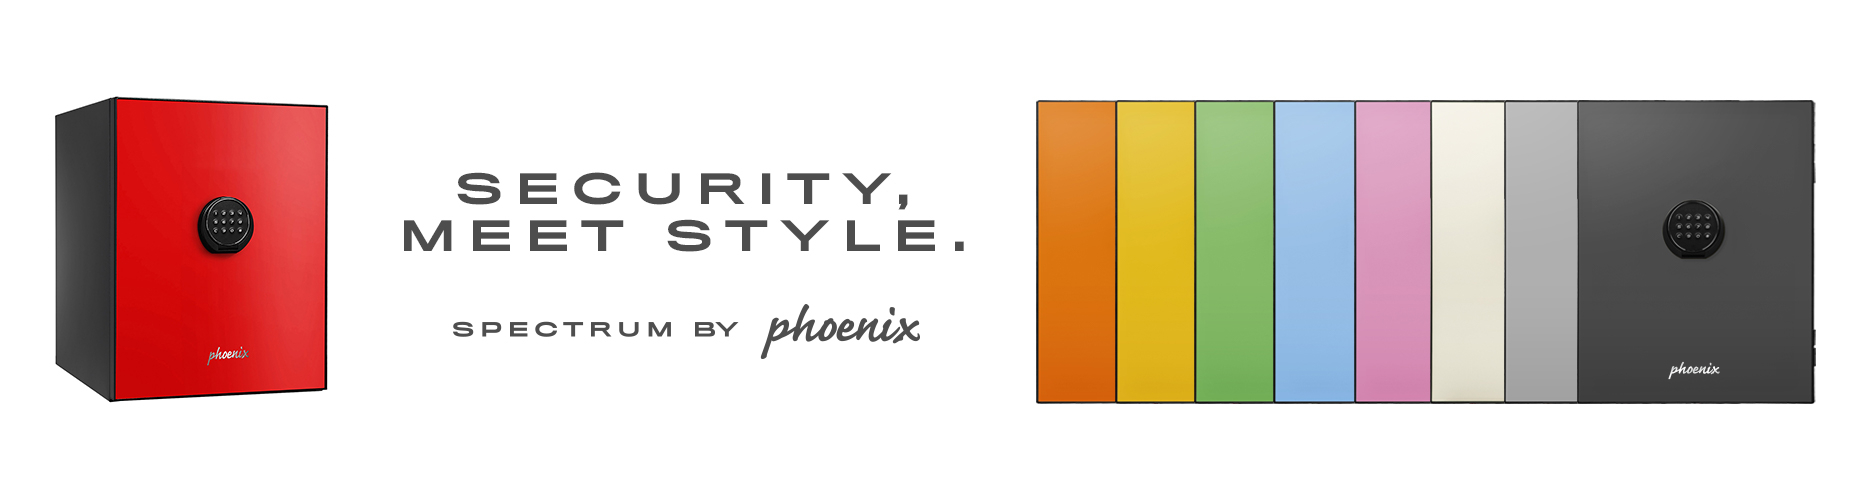 Luxury Safes - Fire and Security